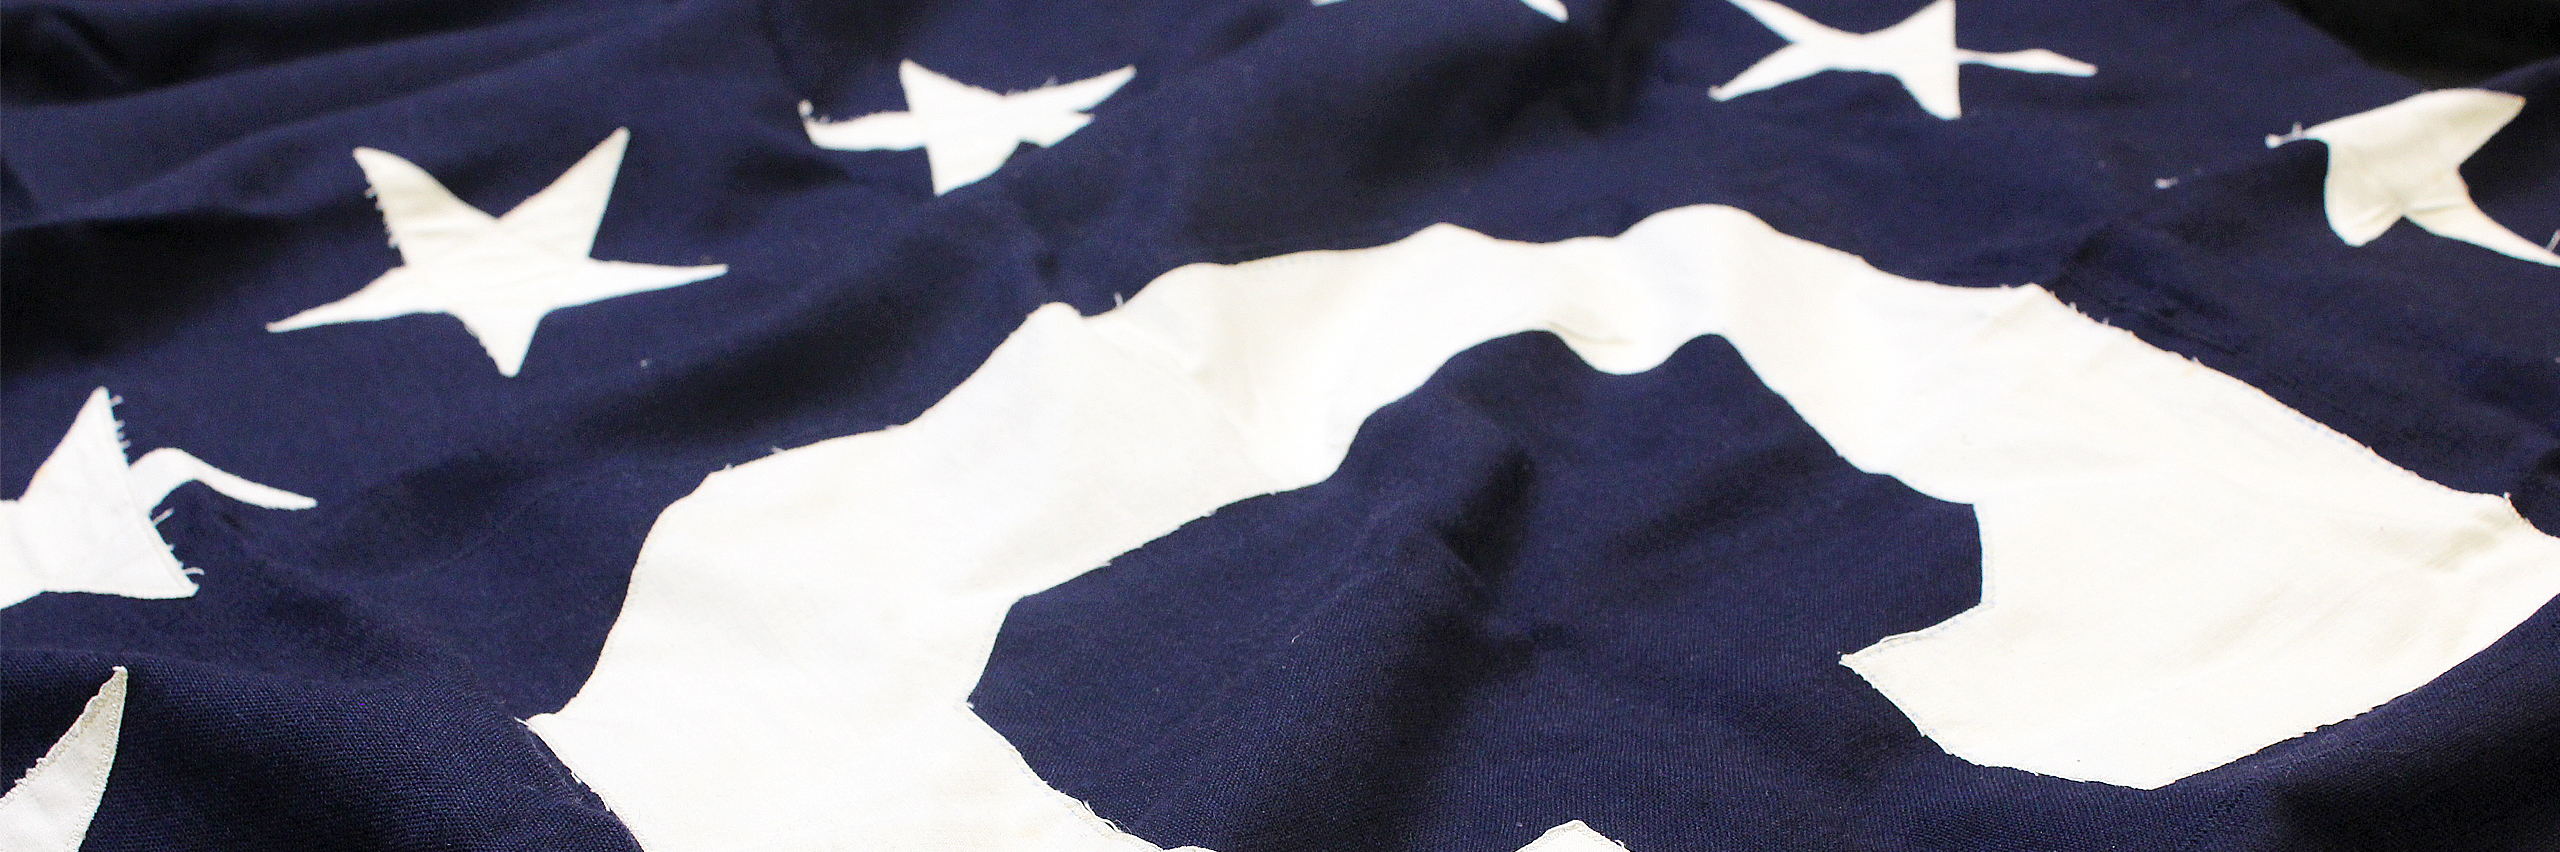 Consular Affairs Flag, white C surrounded by 13 white stars on a field of blue